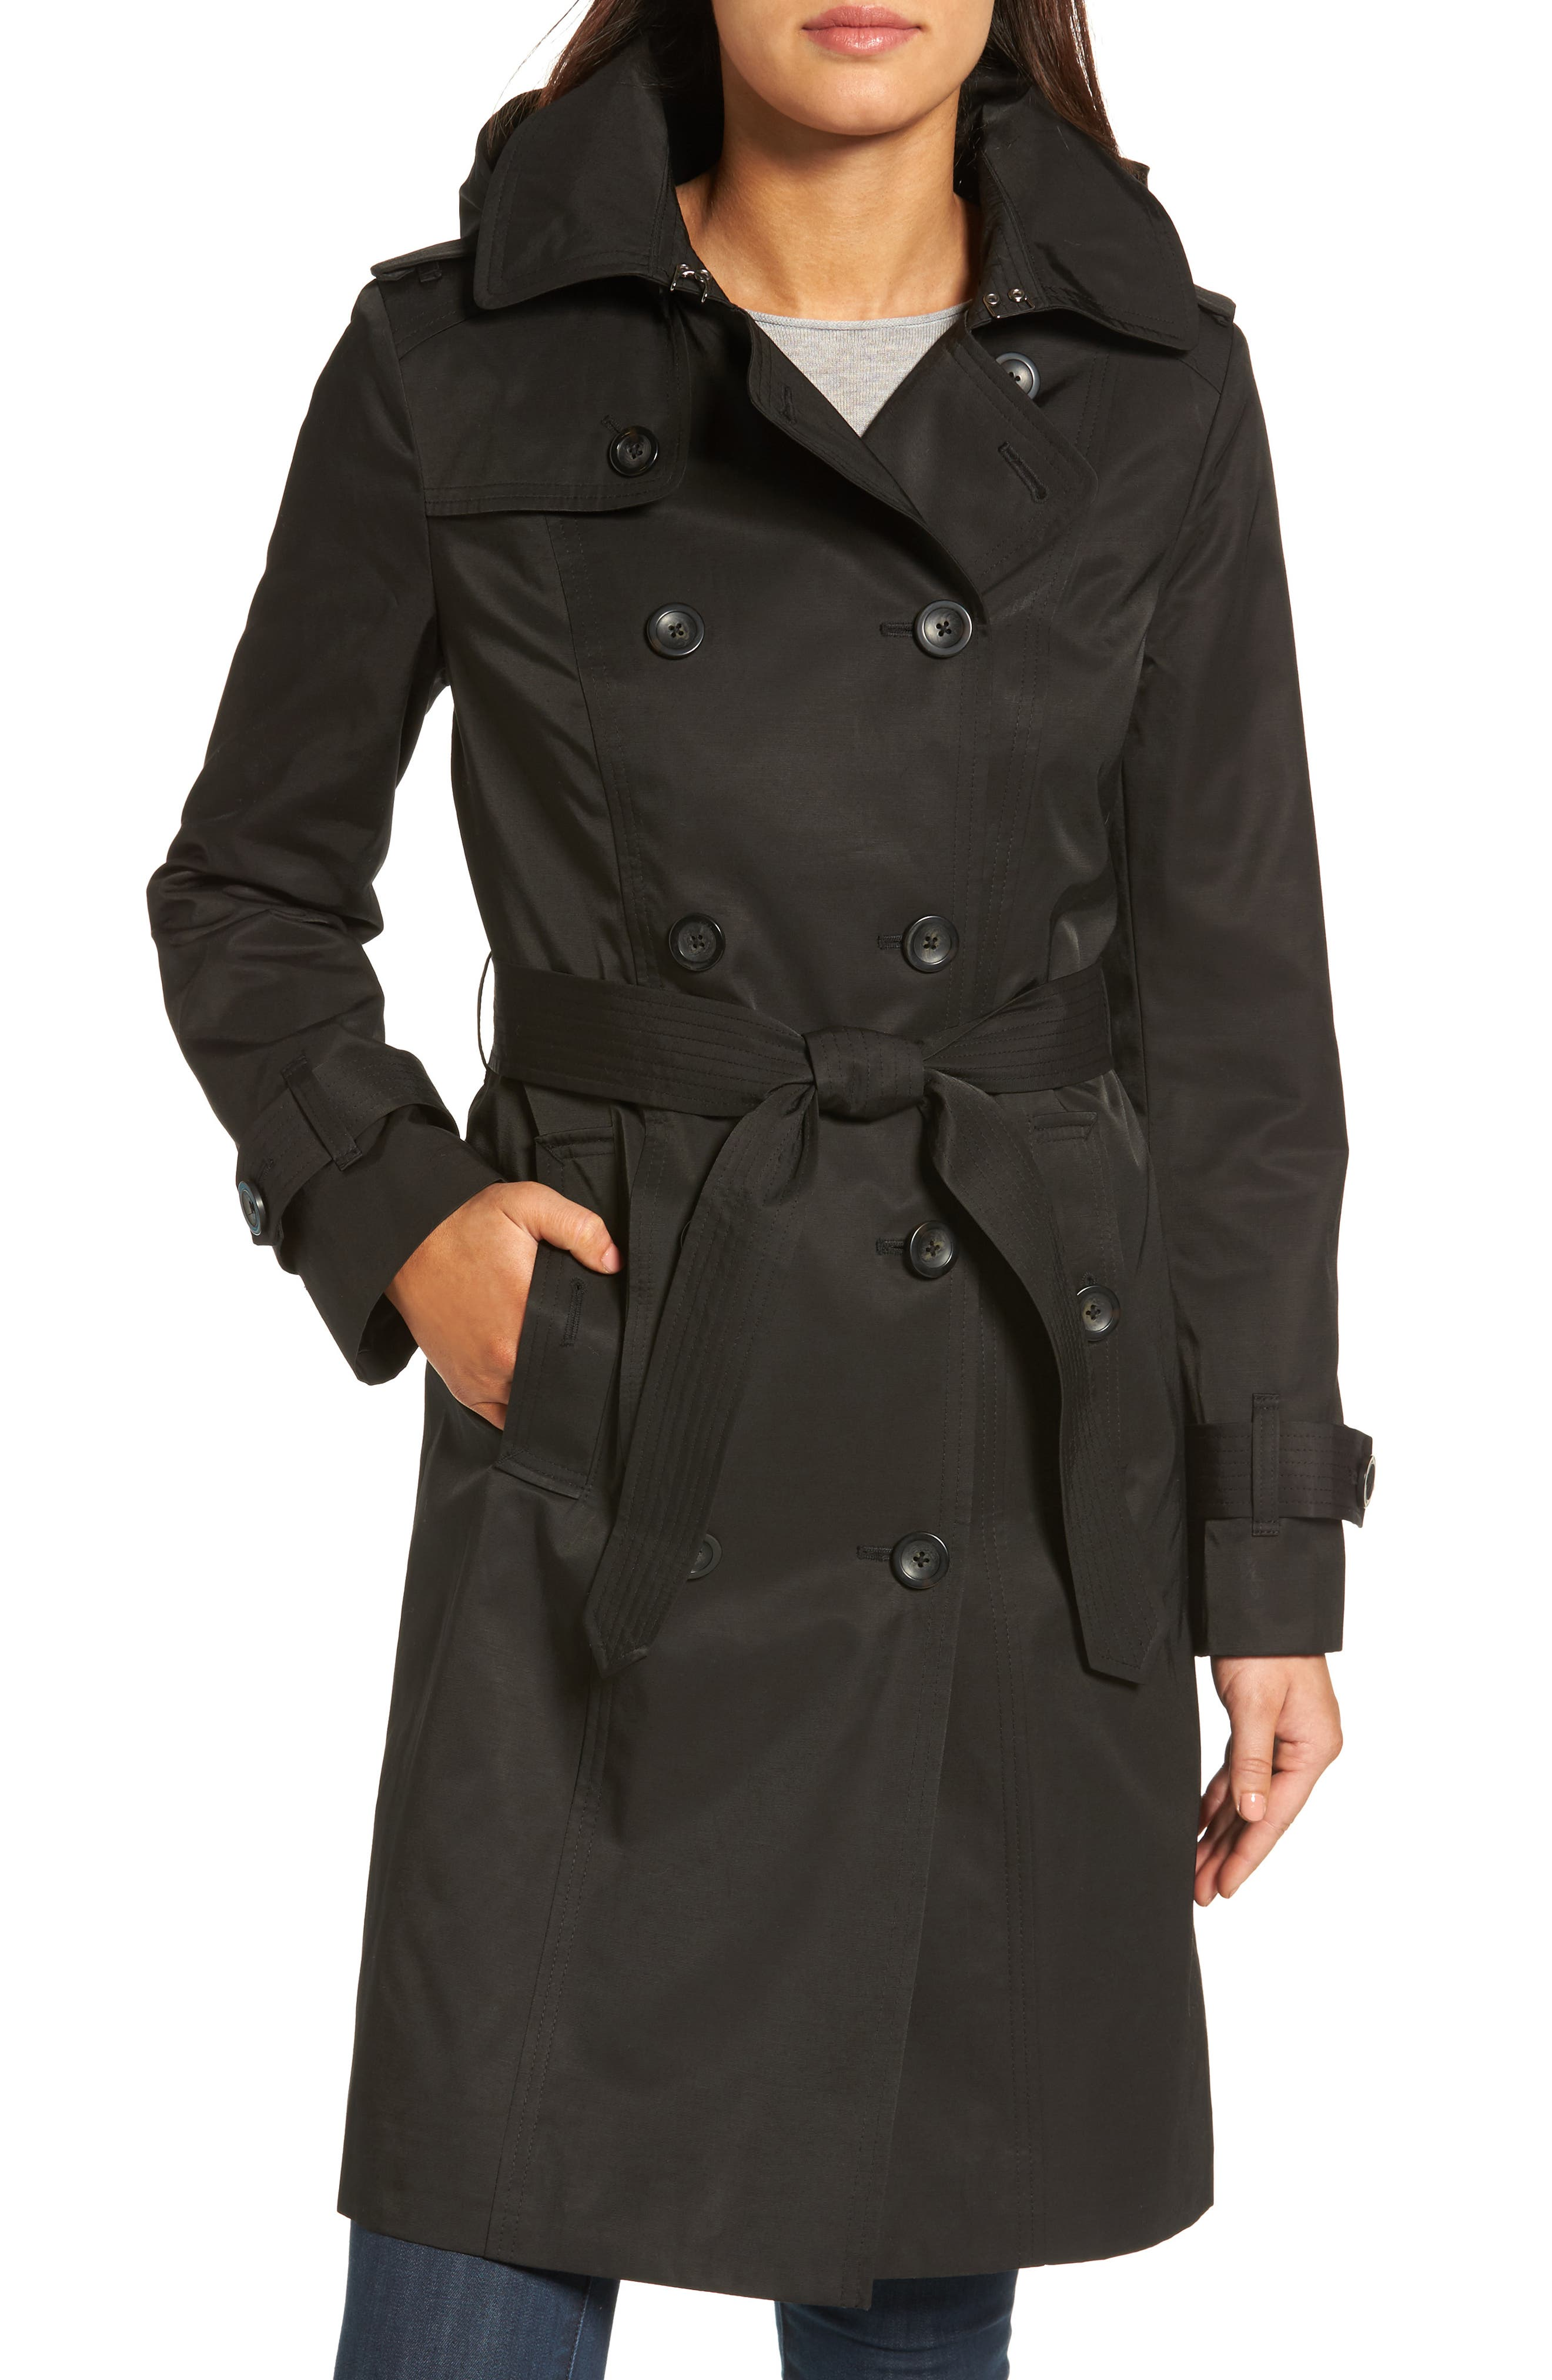 Hooded Double Breasted Long Trench Coat,                             Main thumbnail 1, color,                             Black